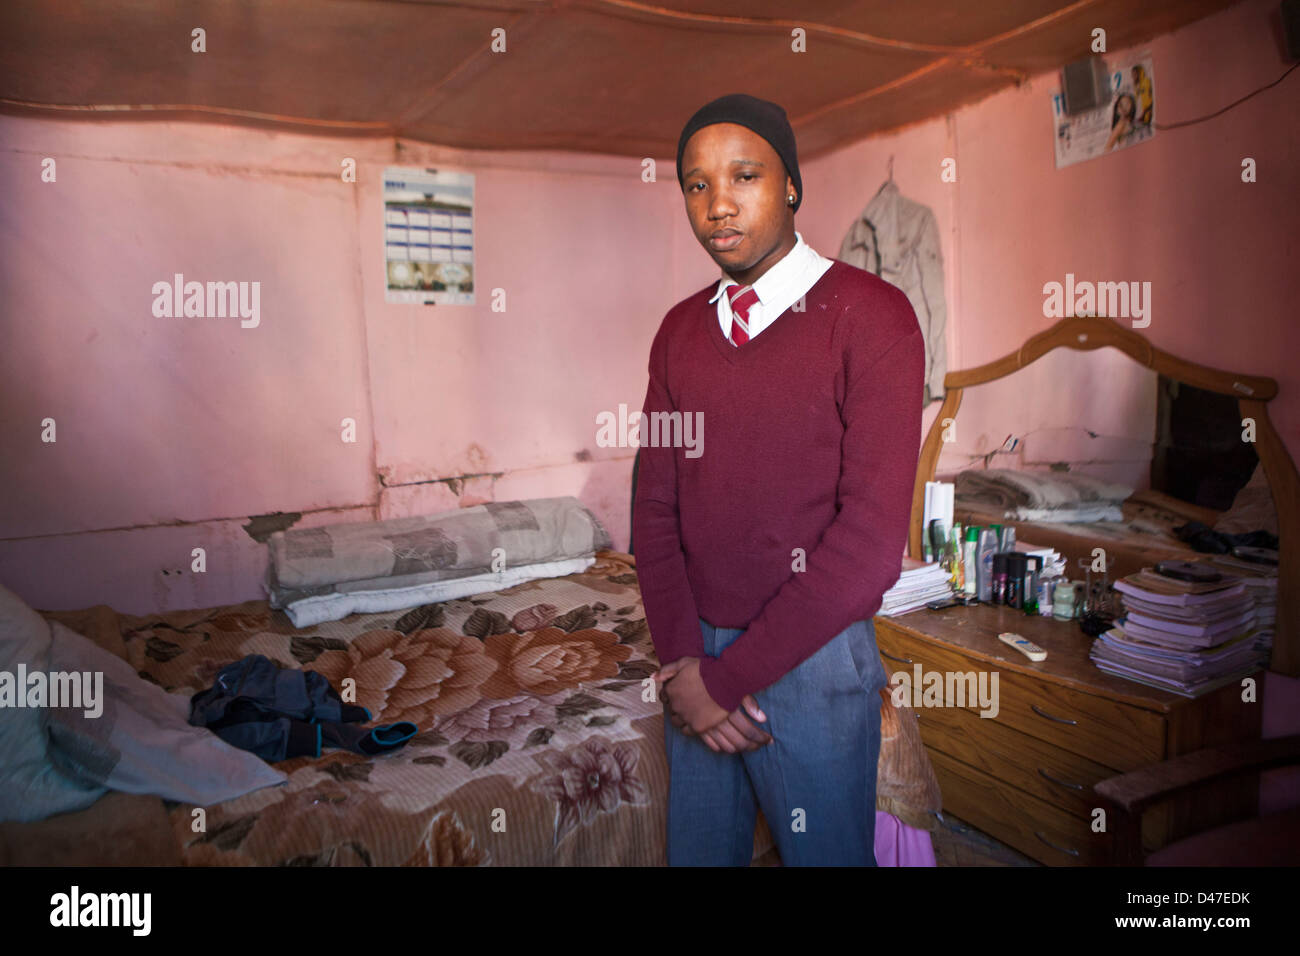 South African high school student, selected for a scholarship at home in his house in Philippi township, Cape Town. - Stock Image